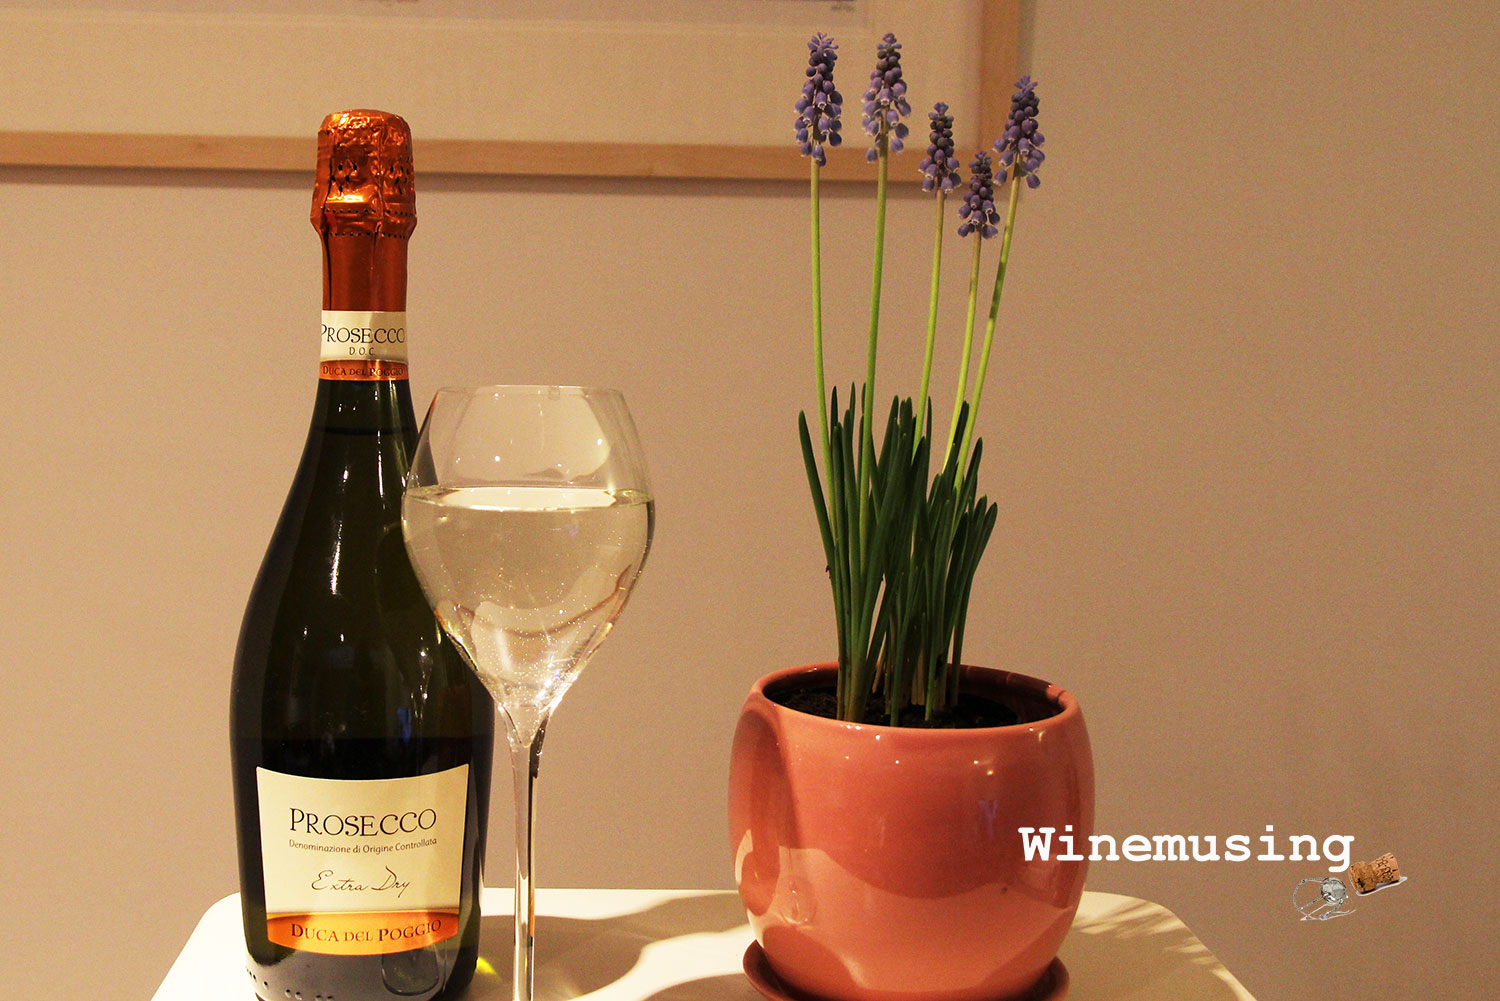 better Prosecco for the price